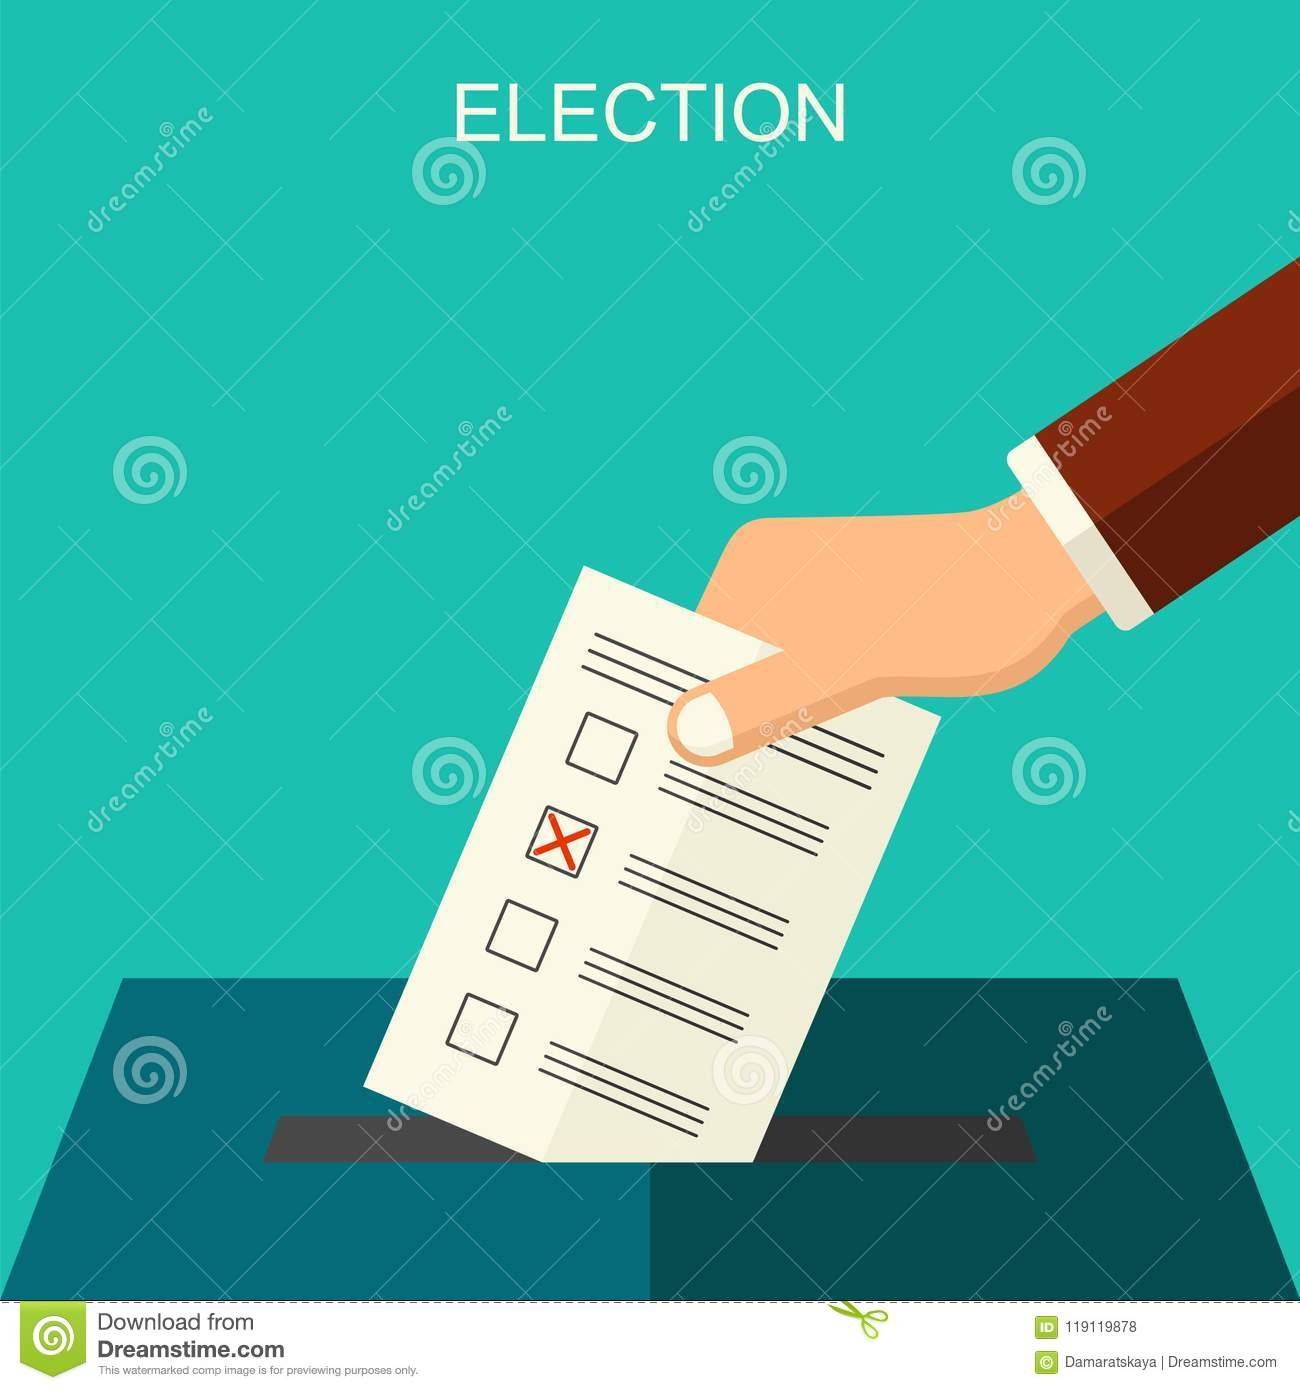 Elections and voting concept vector flat style background. Illustration for political campaign flyer, leaflets and websites.